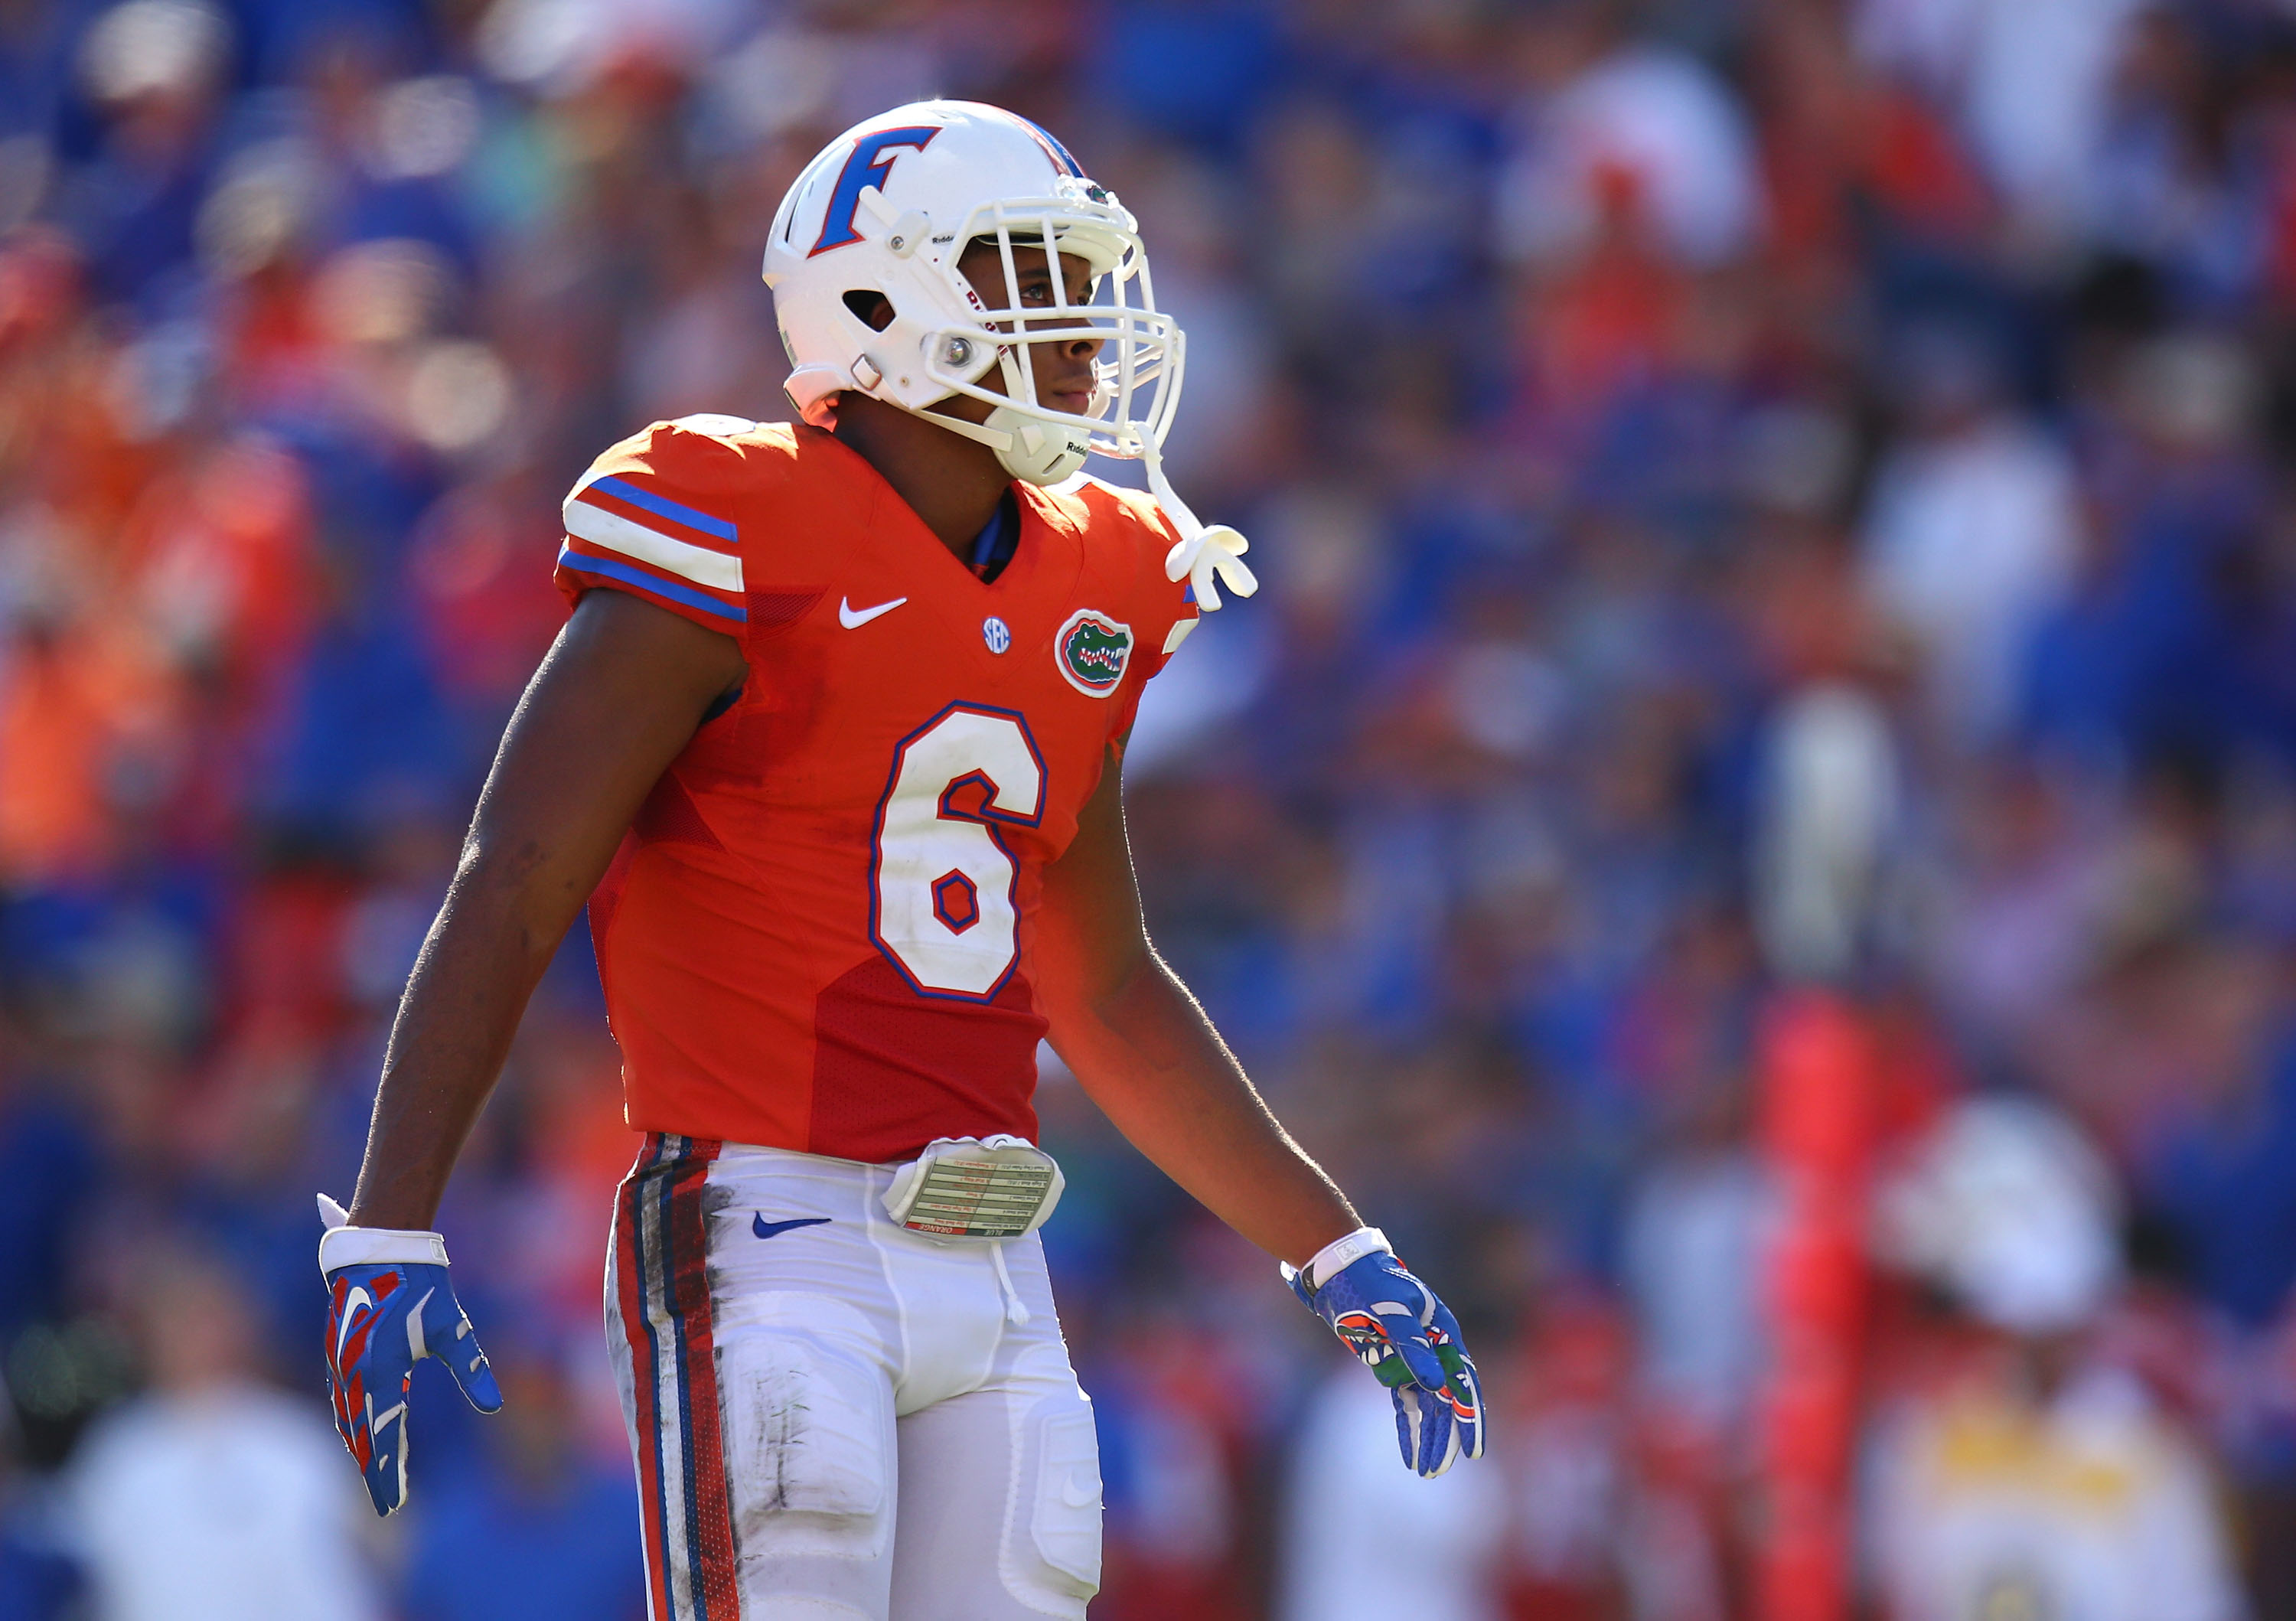 Colts Select: Florida CB Quincy Wilson